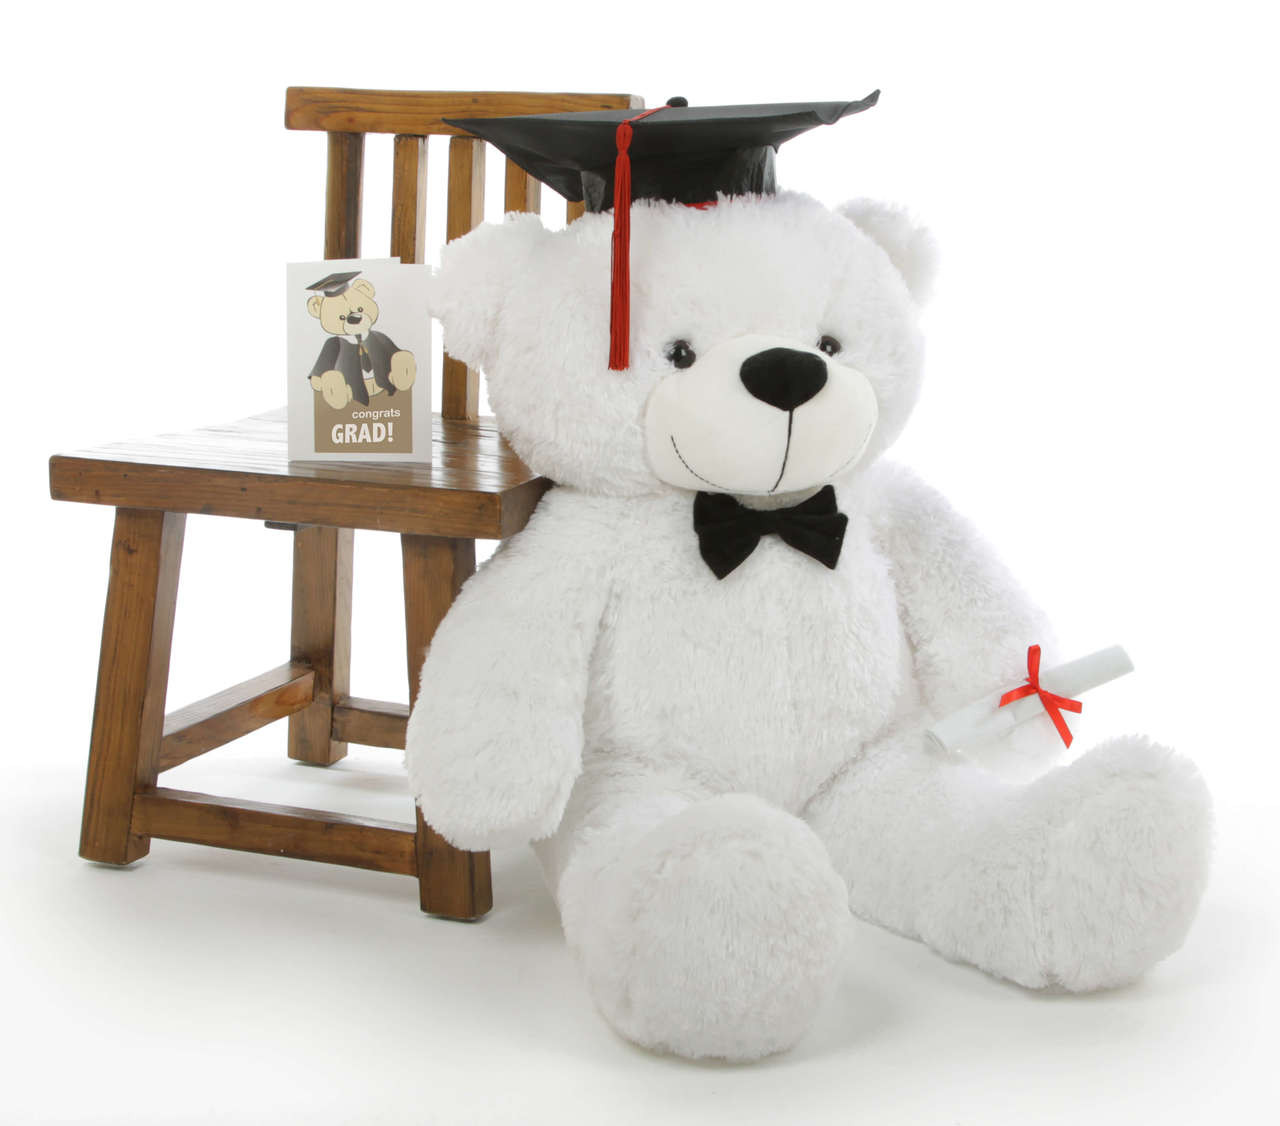 Coco G Cuddles White Graduation Teddy Bear with Cap and Diploma 38in